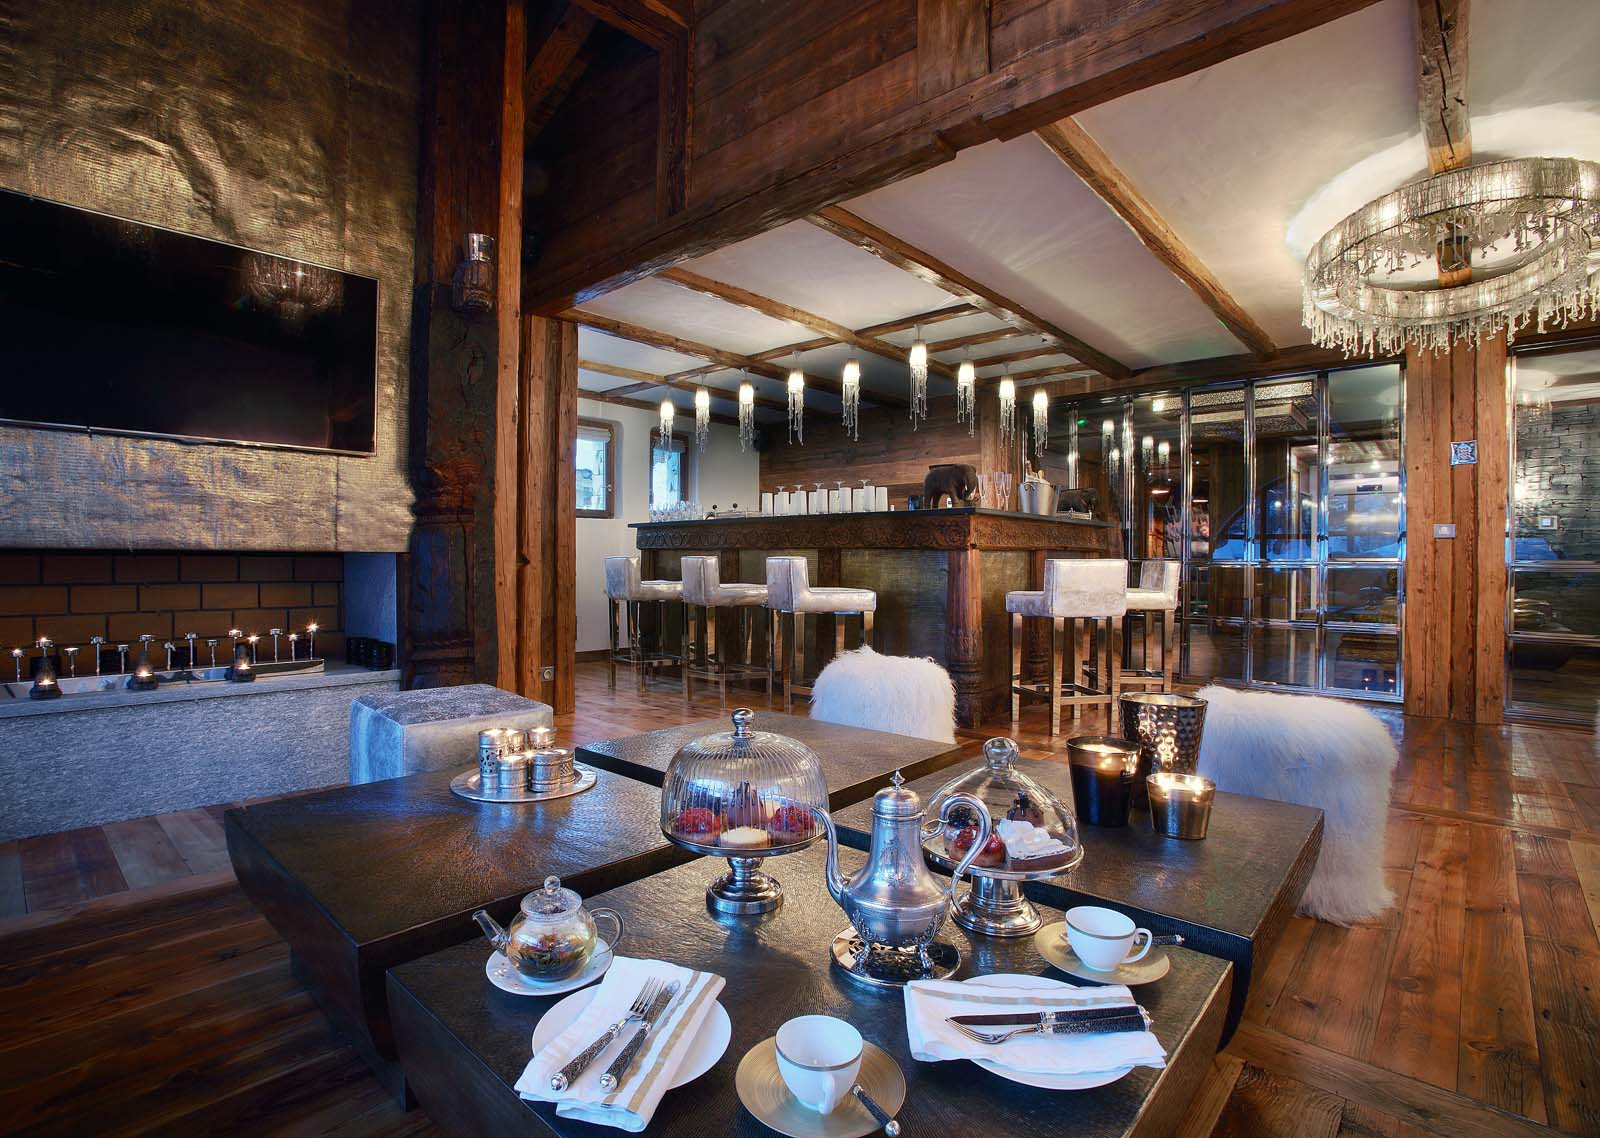 Chalet marco polo in val d 39 isere by skiboutique for Interieur chalet montagne